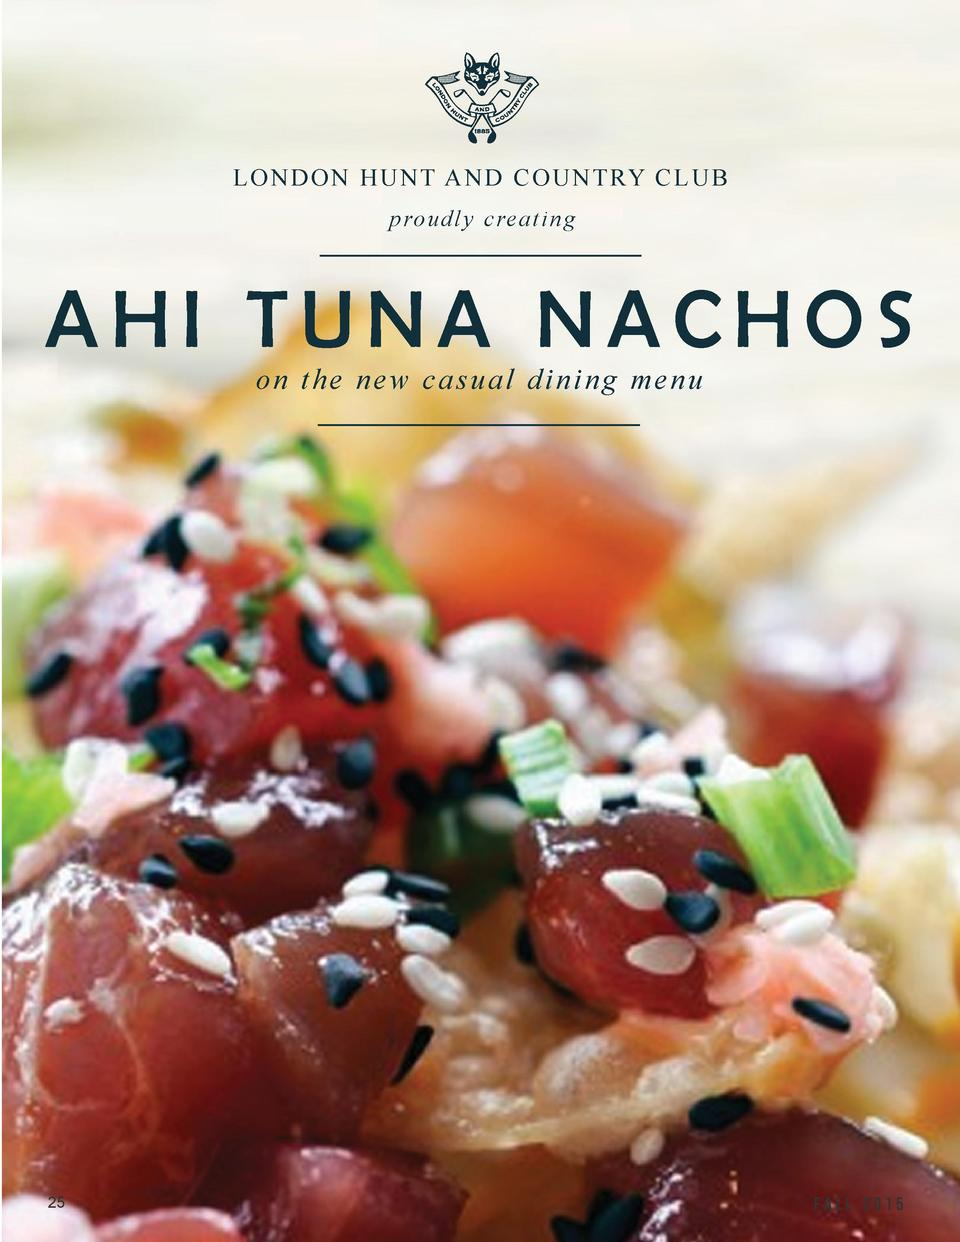 LONDON HUNT AND COUNTRY CLUB proudly creating  AHI TUNA NACHOS on the new casual dining menu  25  2015-09-01 Club Life.ind...